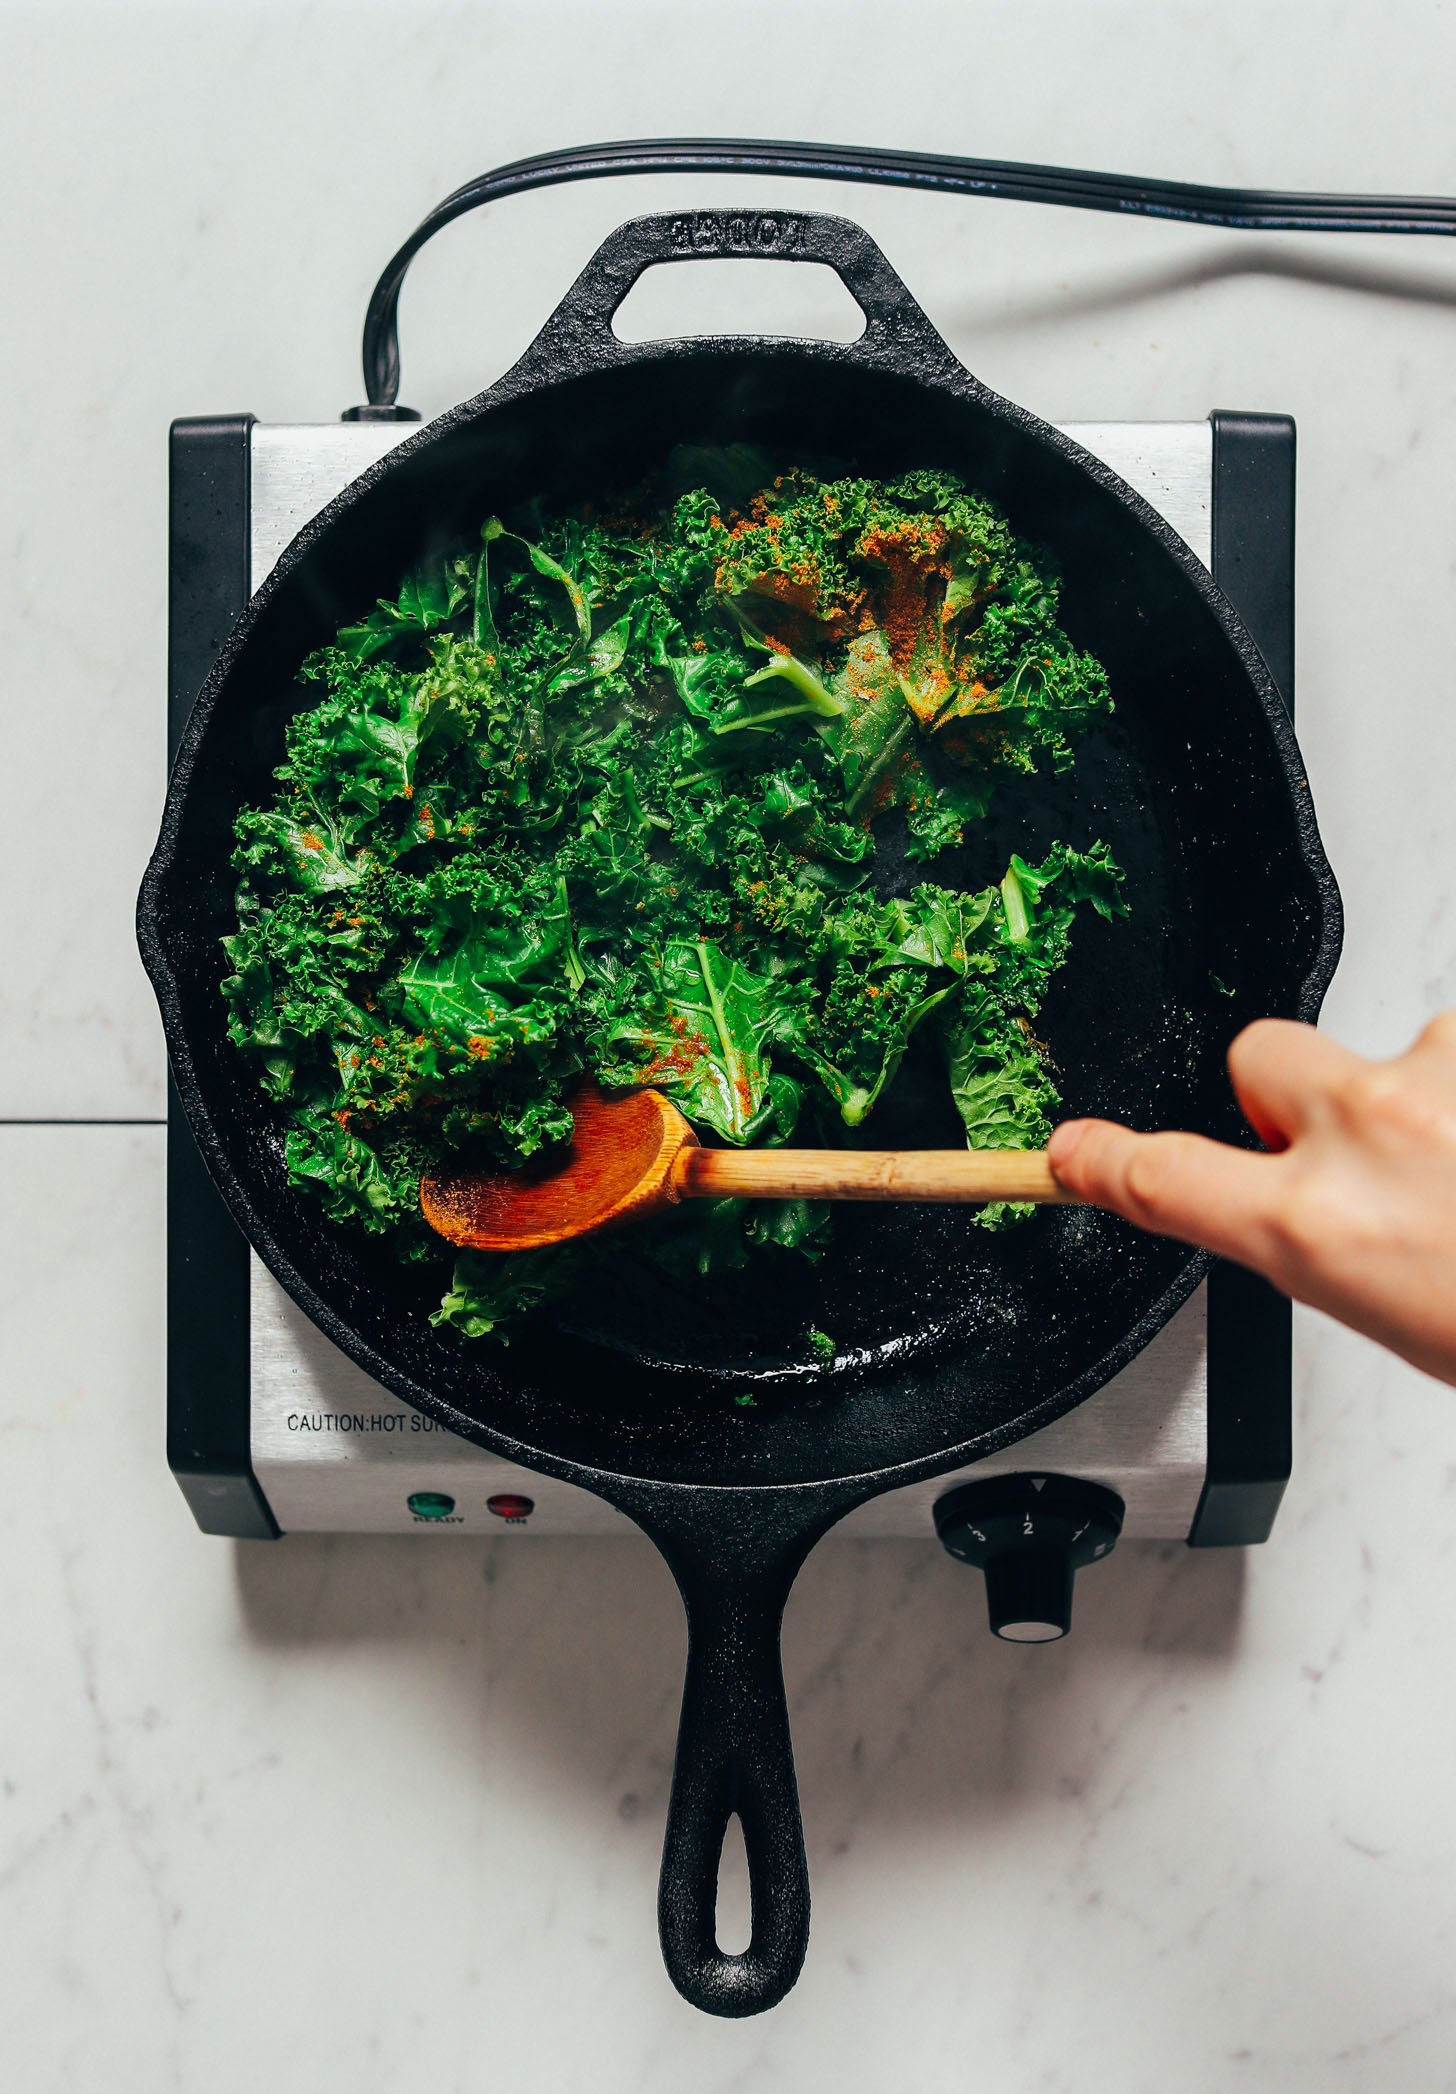 Sautéing kale in a cast iron skillet